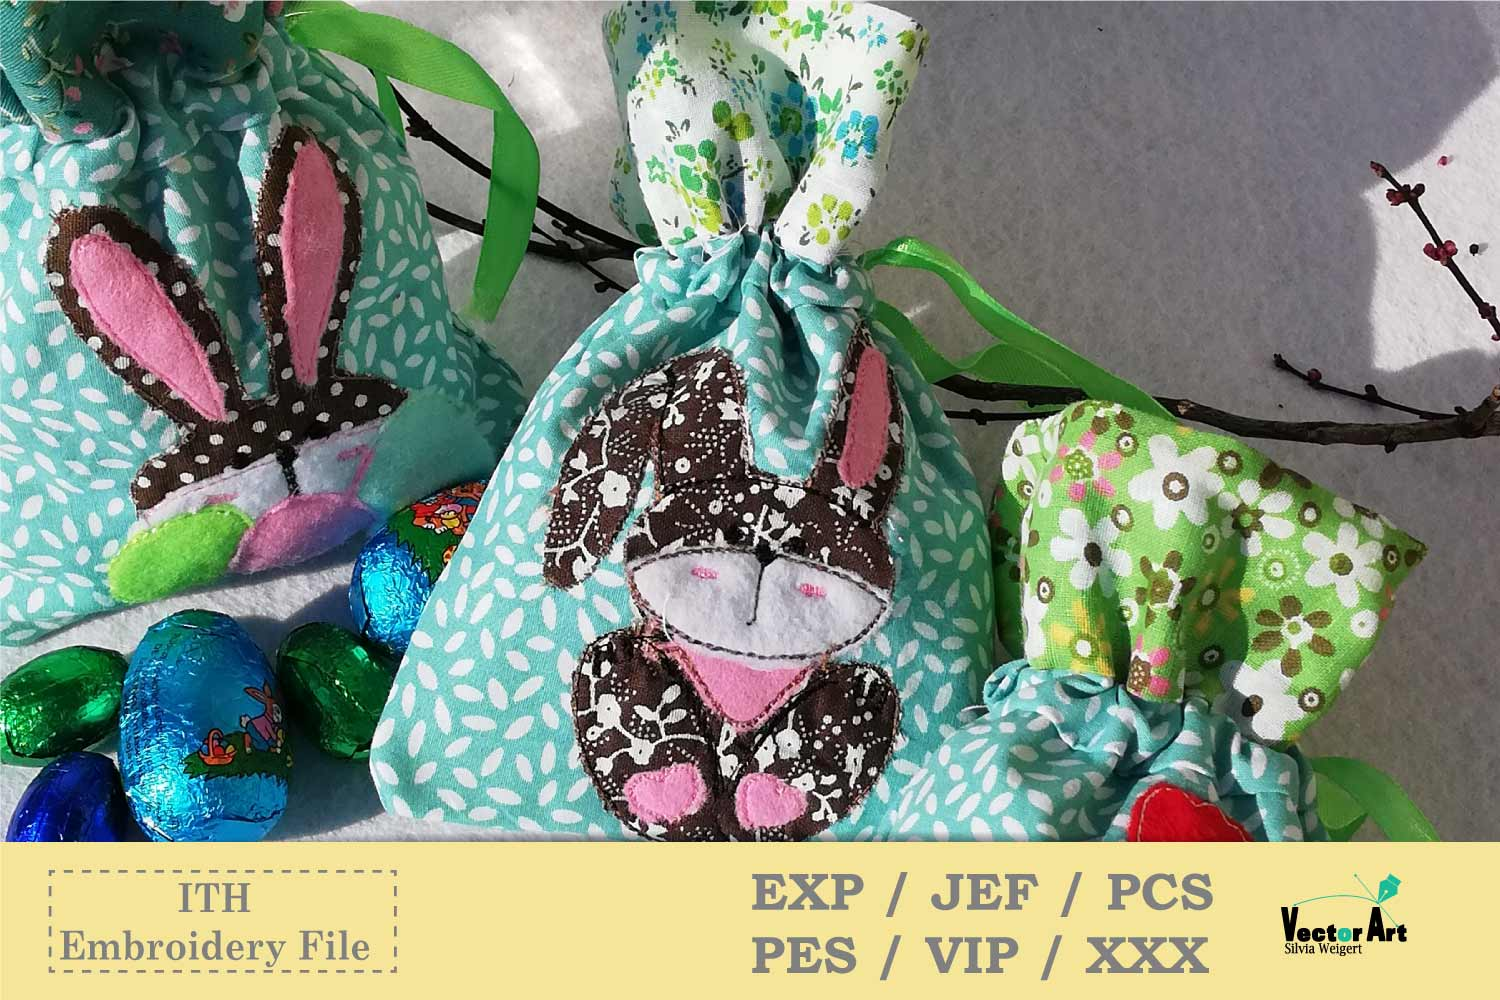 ITH -Drawstring Bag with Bunny - Embroidery File example image 3